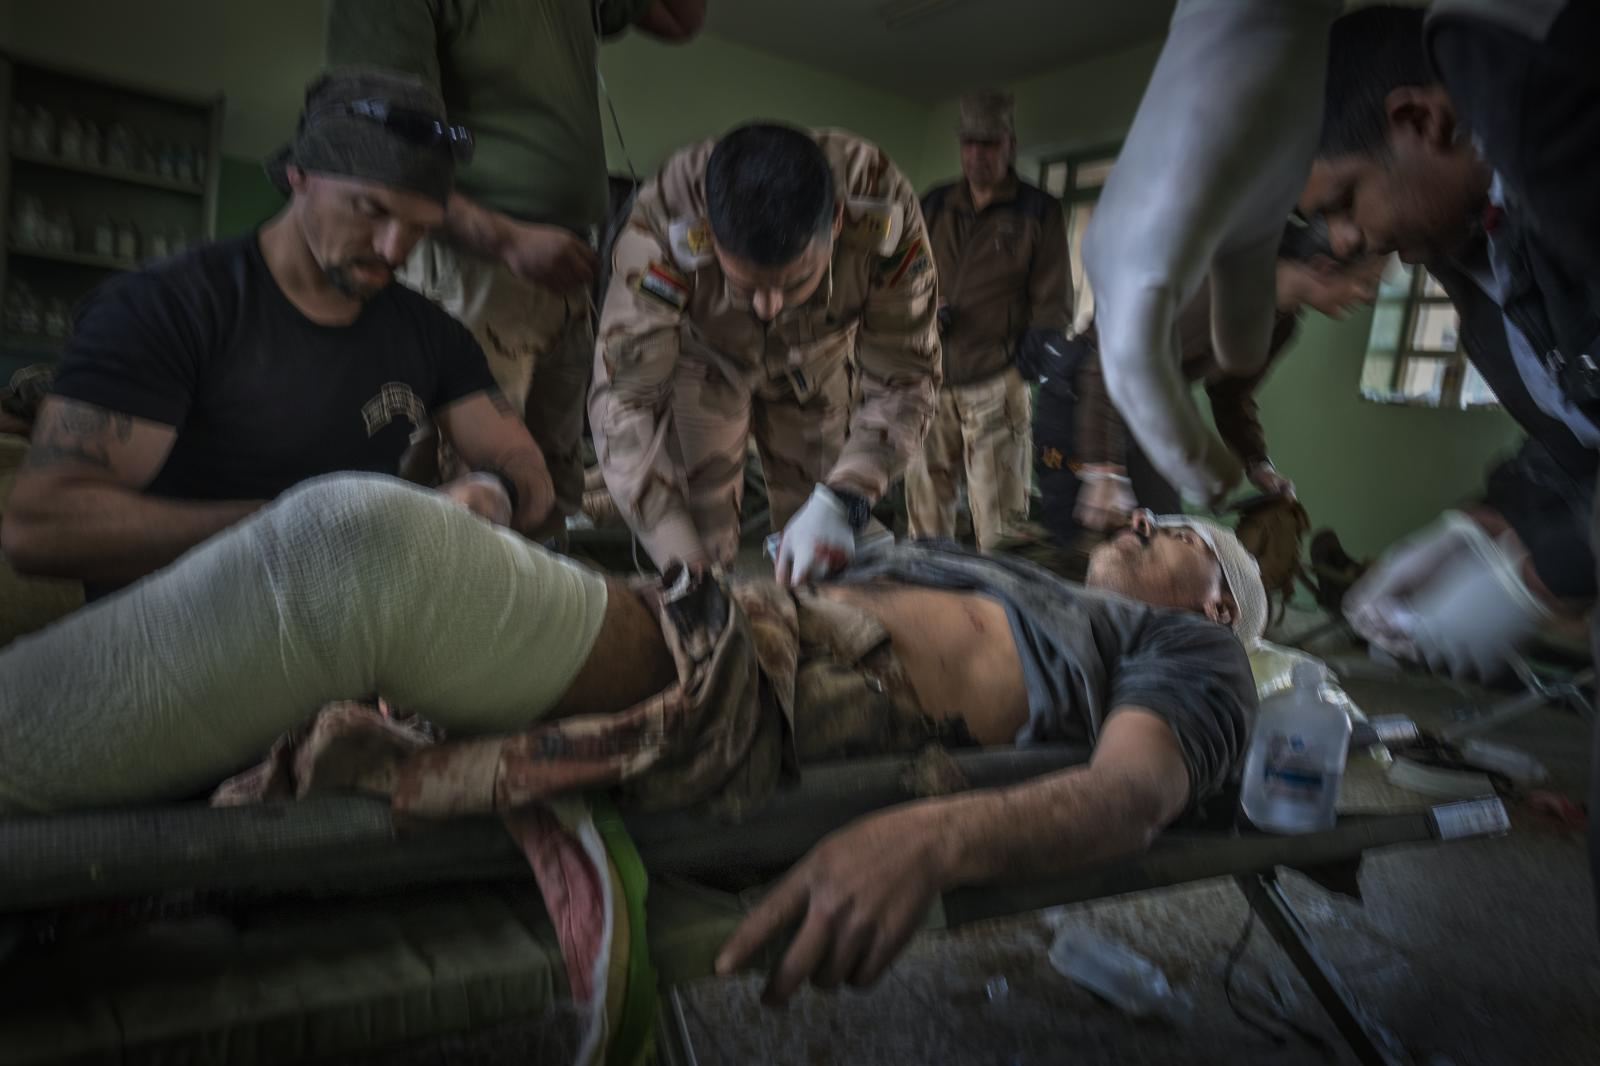 Members of the Free Burma Rangers (a multiethnic humanitarian service movement) assist Iraqi healthcare workers with several people injured in the fighting, in a field hospital on the southwestern front. Battle of Mosul (Iraq, 2017)